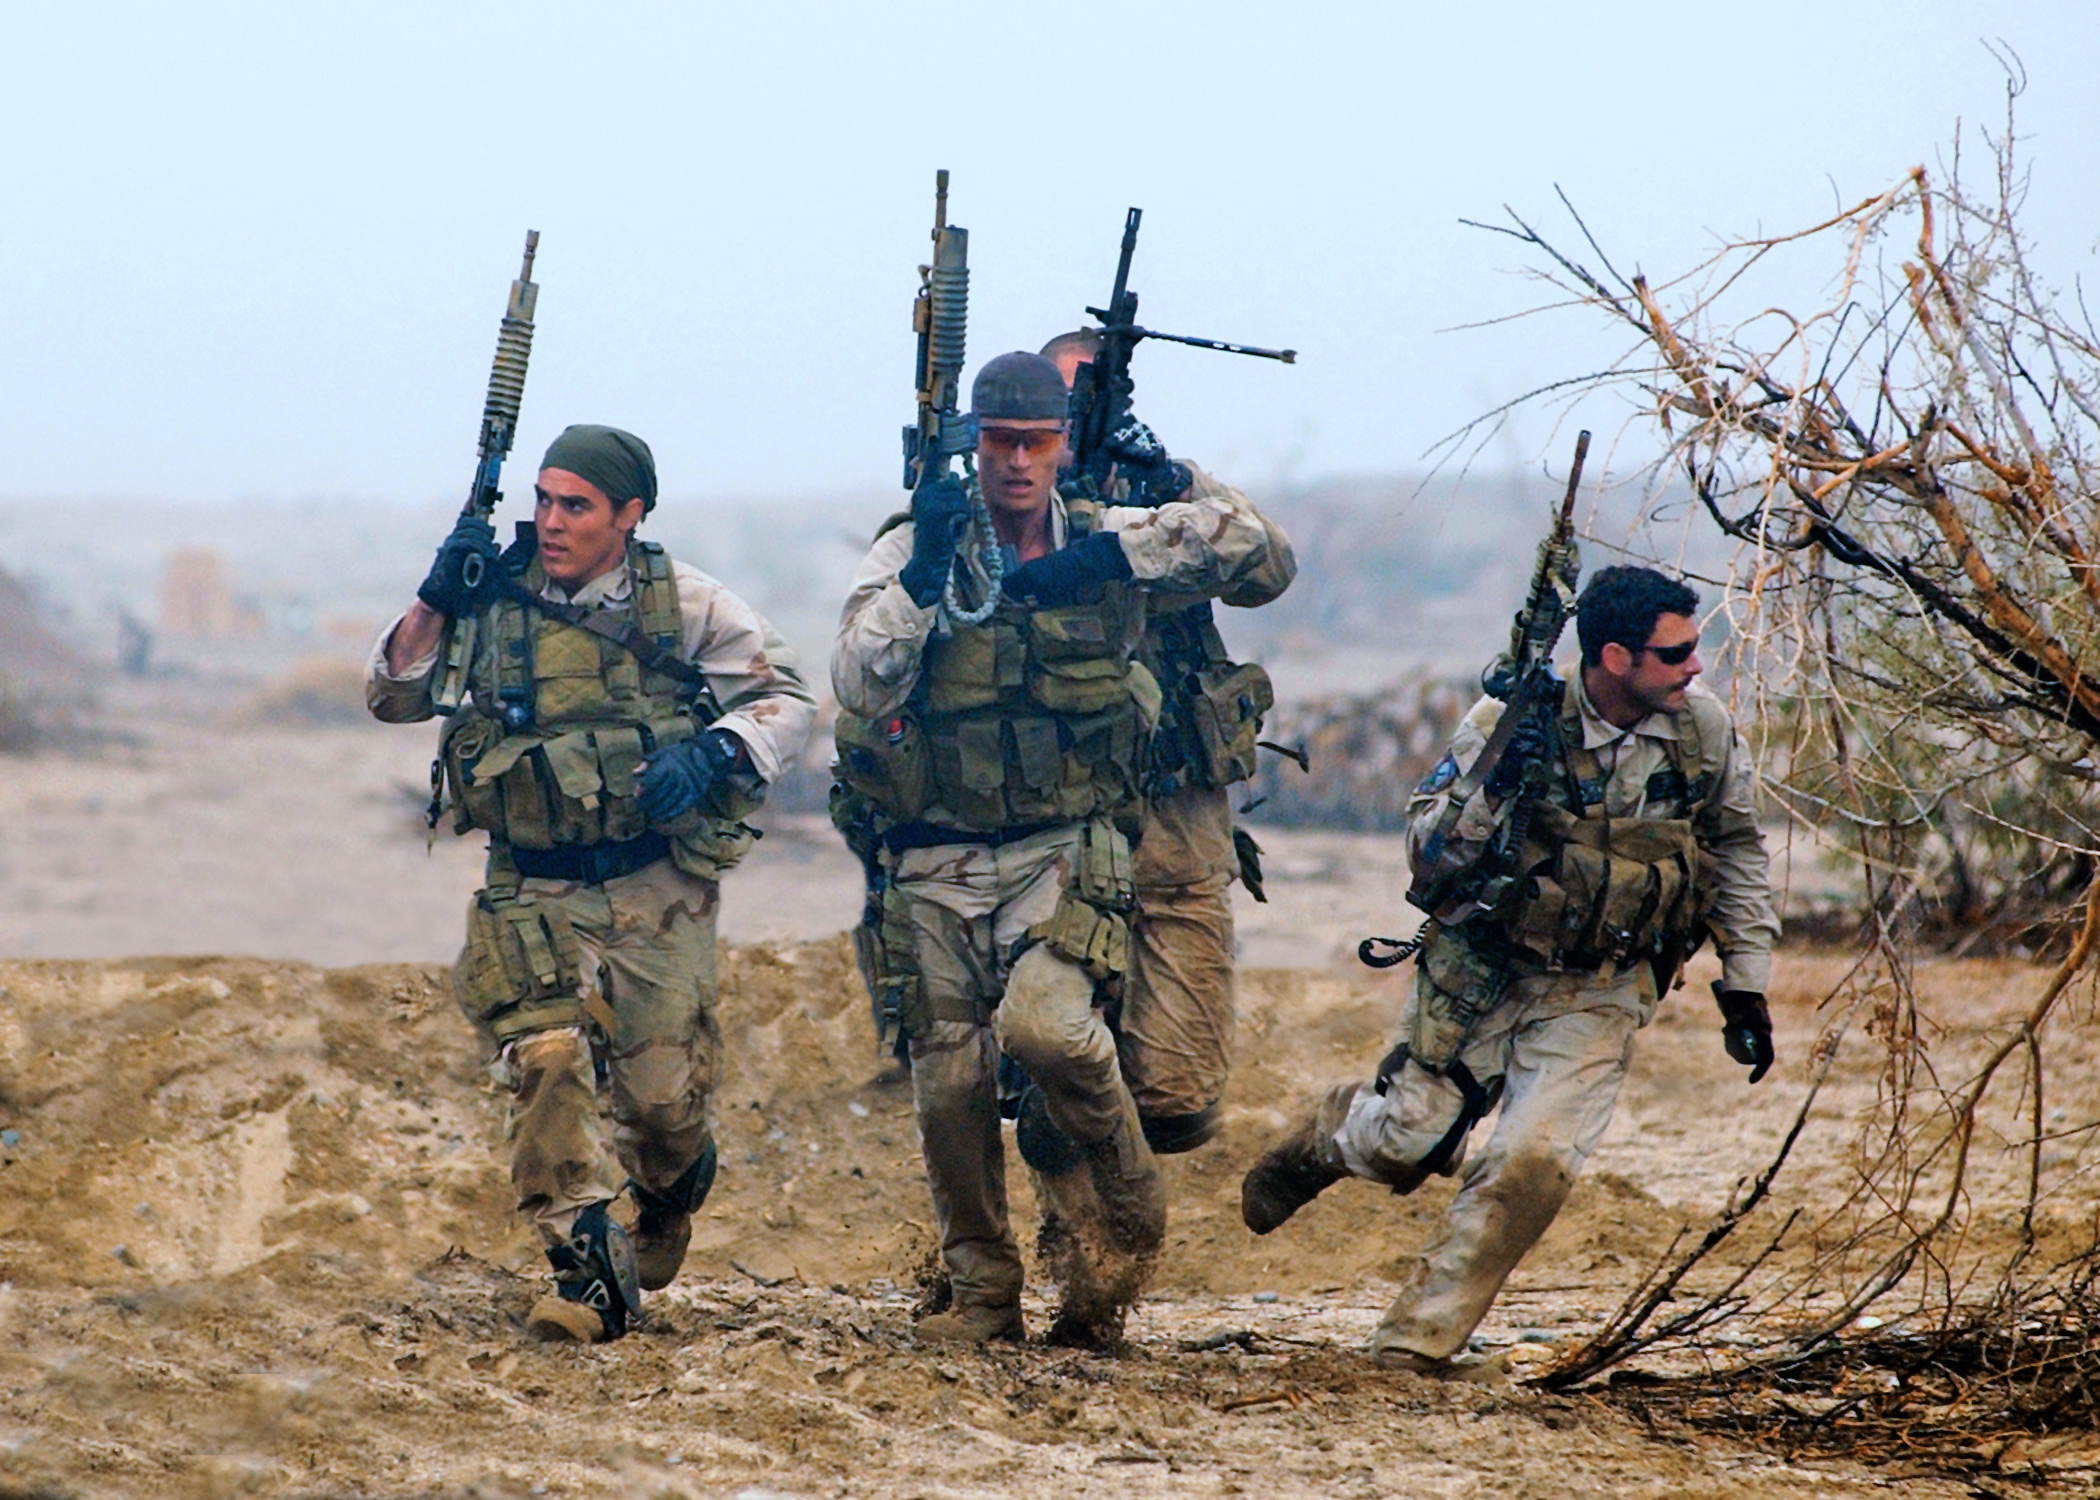 Members of a SEAL Team practice desert training exercises at